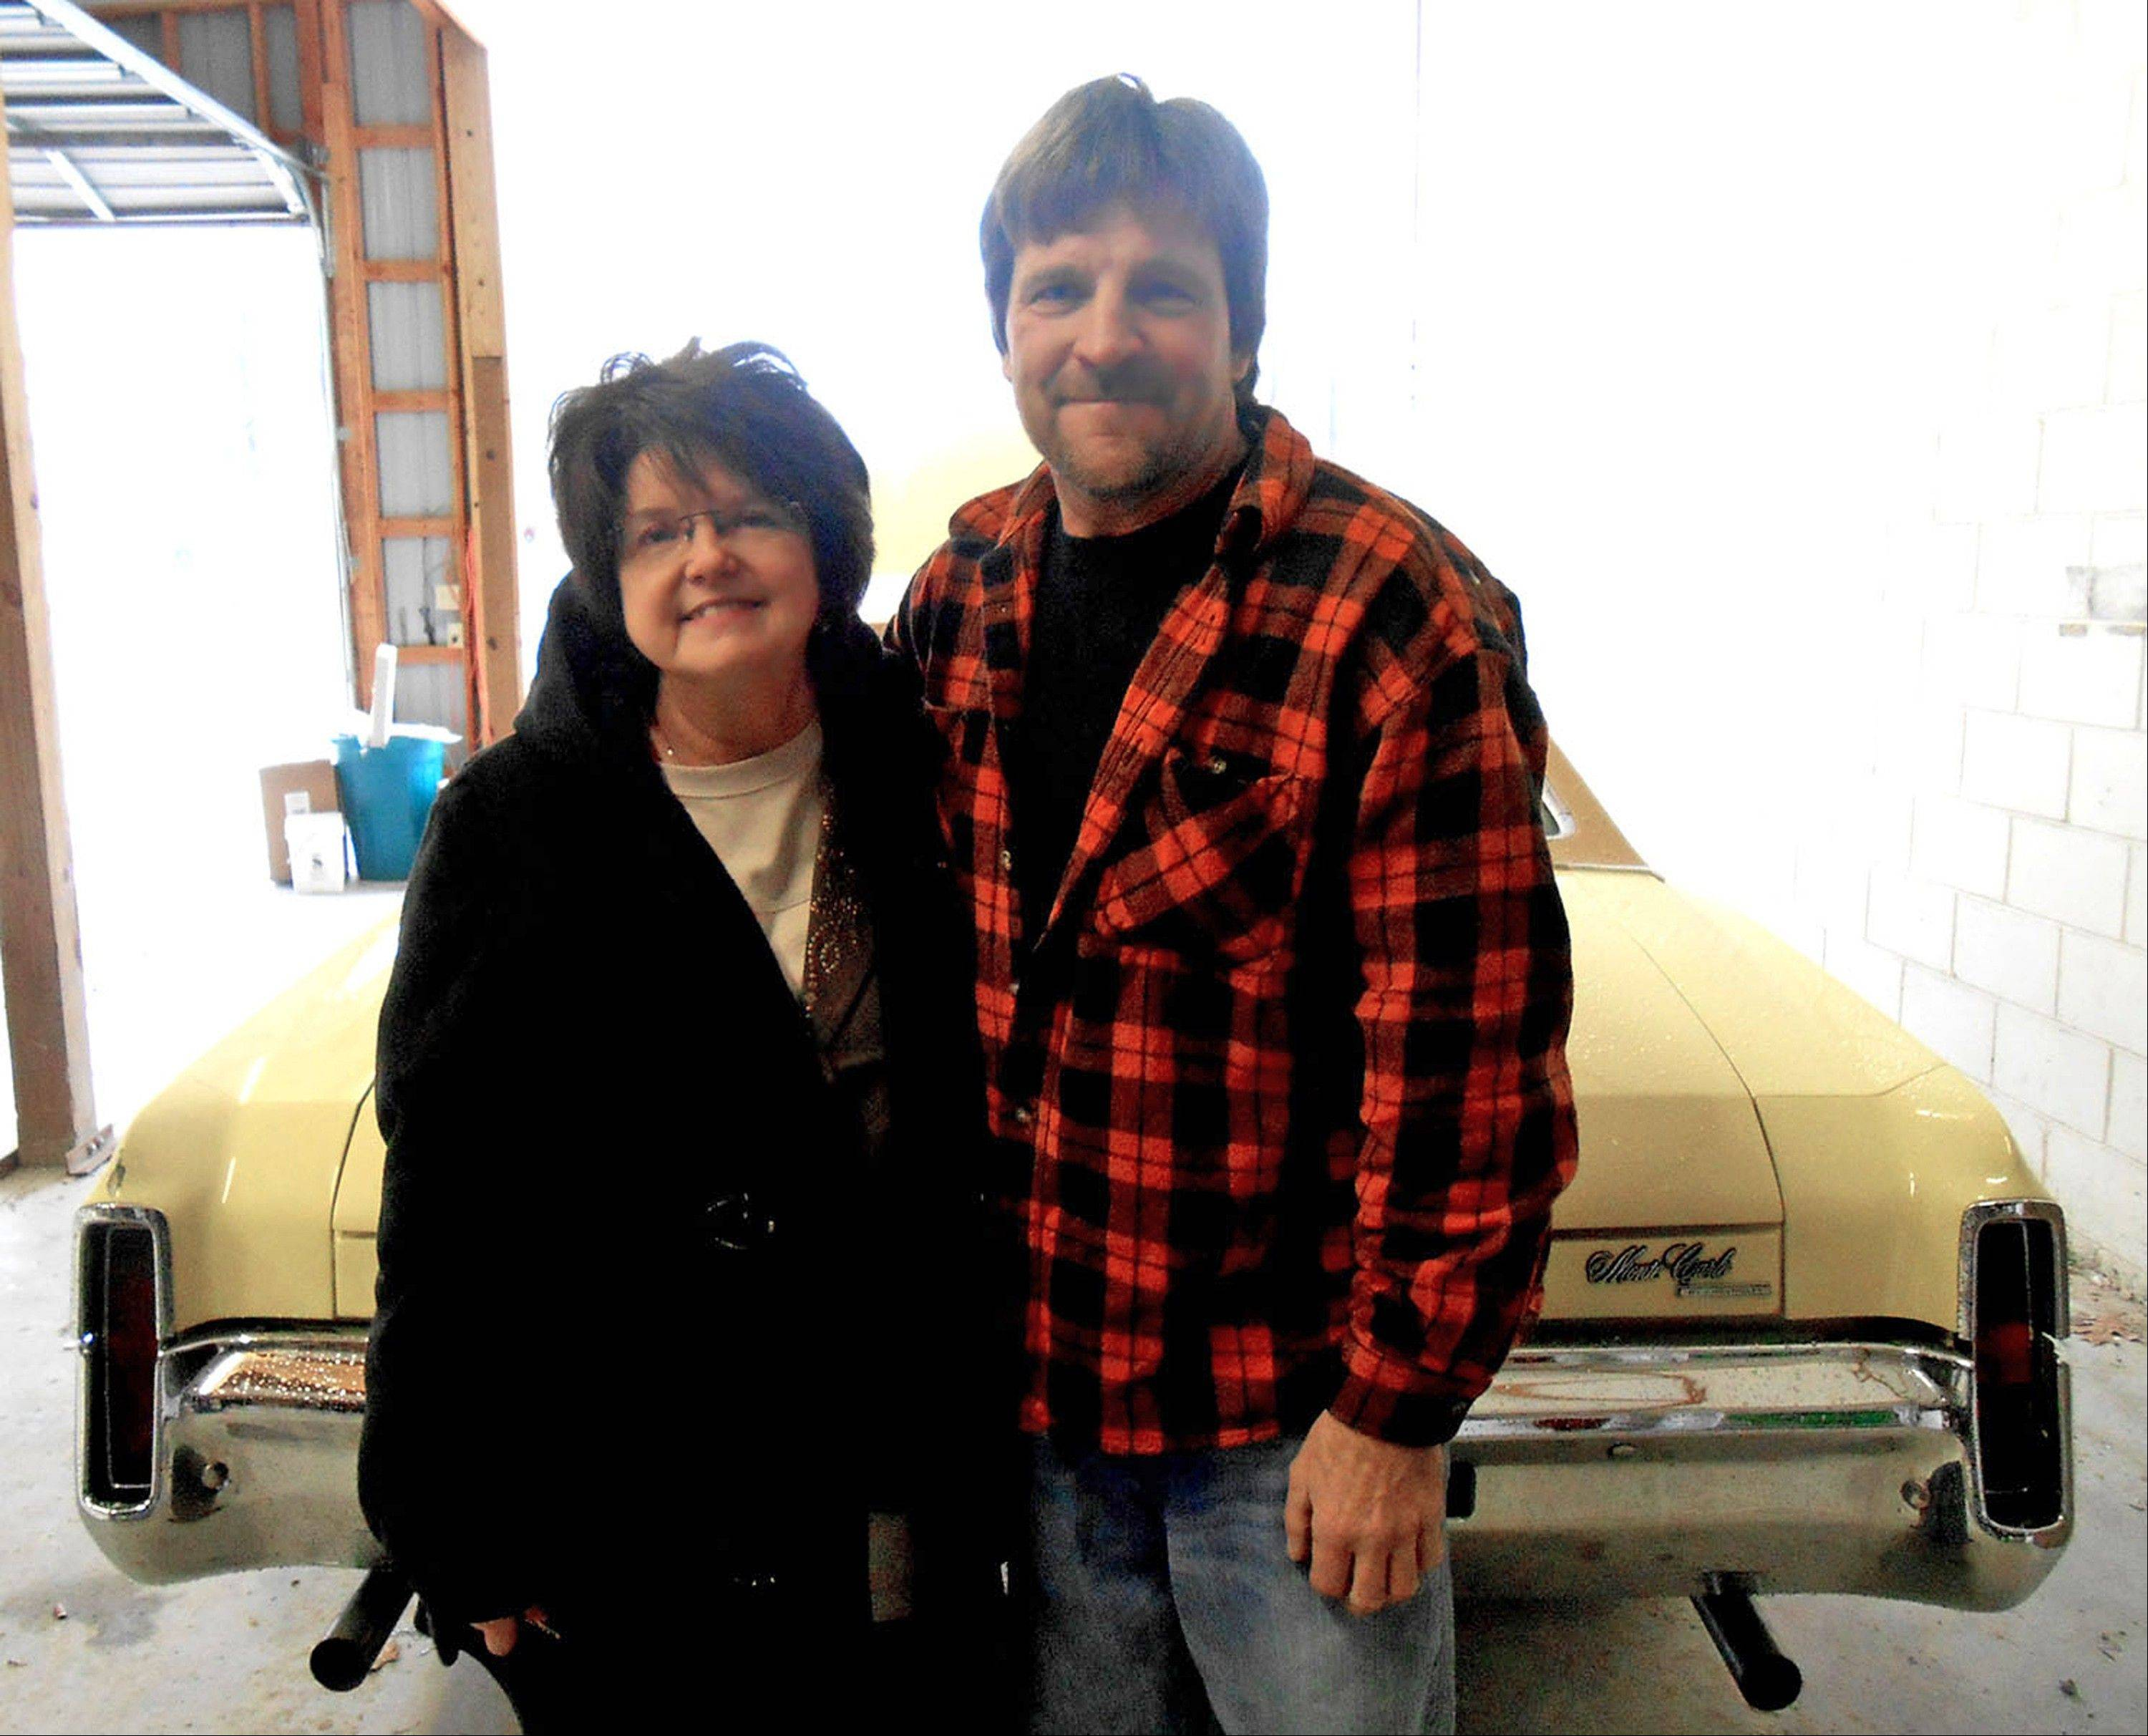 Cathy Henderson and Kevin Pocrnich will sell at auction this 1970 Chevrolet Monte Carlo that many in the Effingham community helped restore recently for Cathy's late husband, Ron Henderson, who died of cancer.